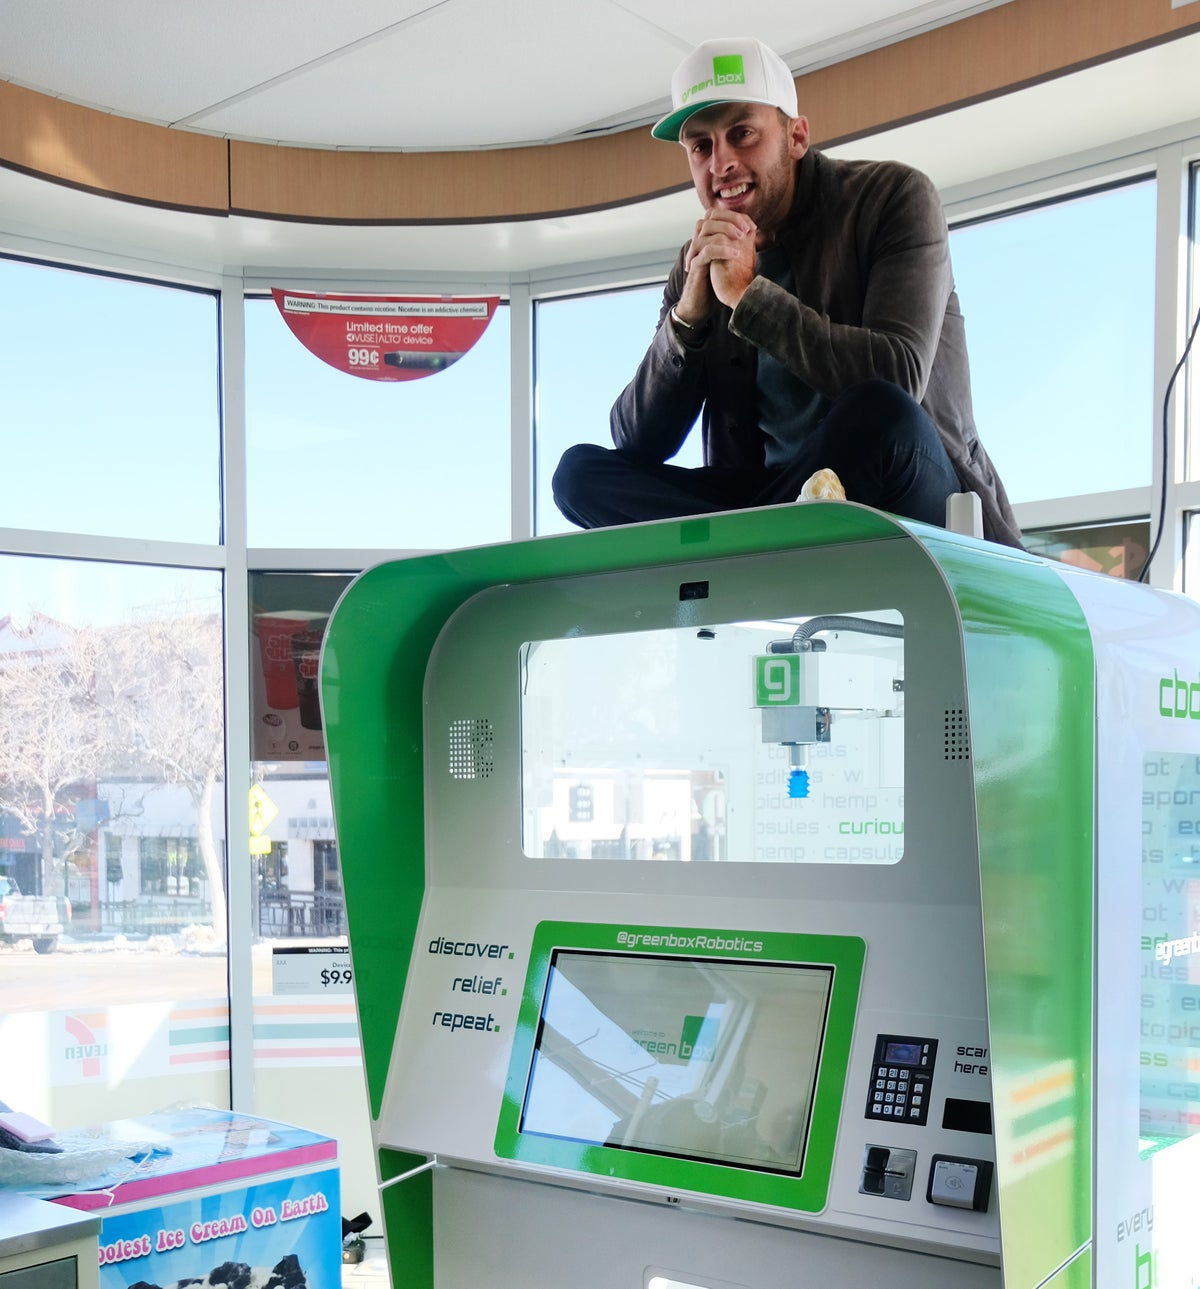 <i>Greenbox Robotics CEO and founder Zack Johnson poses with a robot in a Colorado 7-Eleven.  / Photo Credit: Caroline Murphy/Greenbox</i>